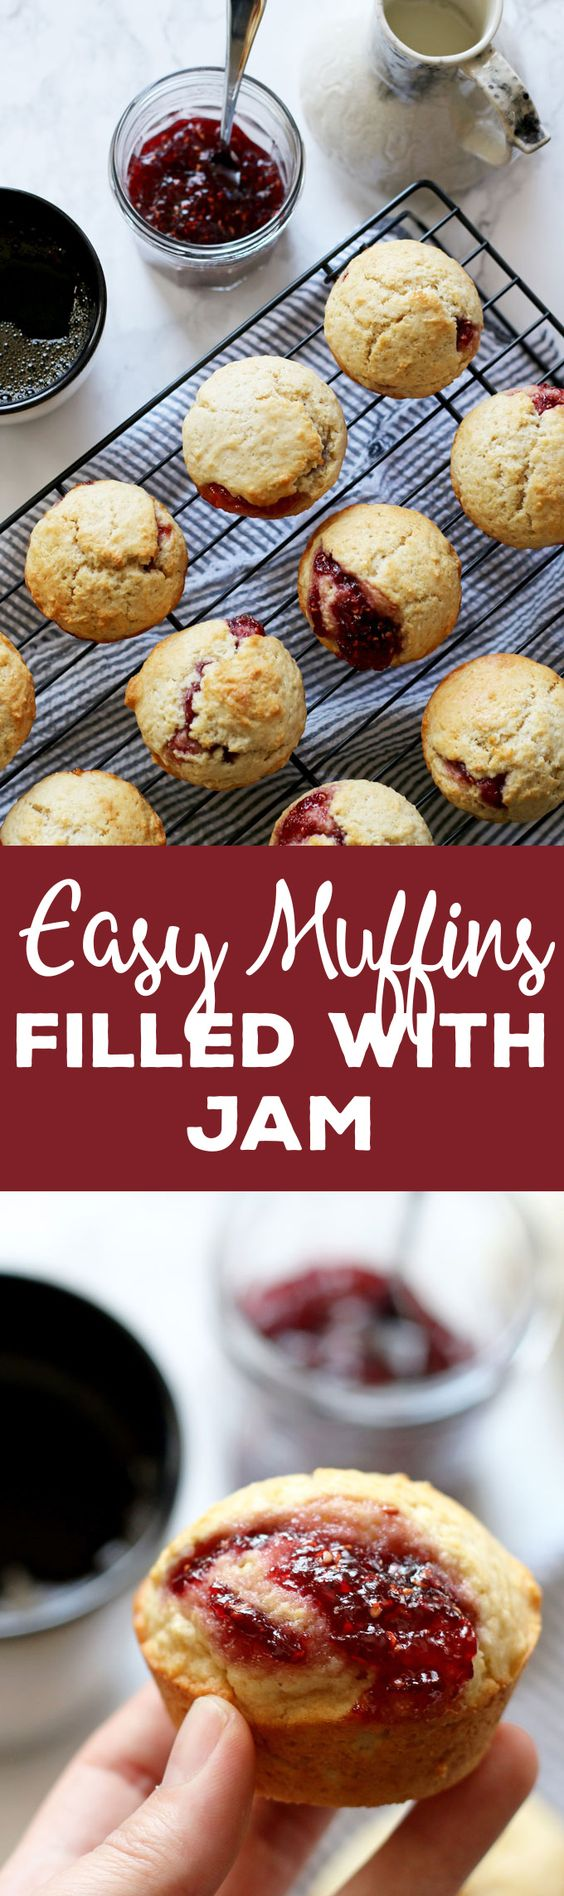 These easy muffins filled with jam are the perfect quick breakfast! I like to eat one or two in the morning with a piping hot cup of coffee. It's such an easy recipe to make that you can make a batch when you wake up.